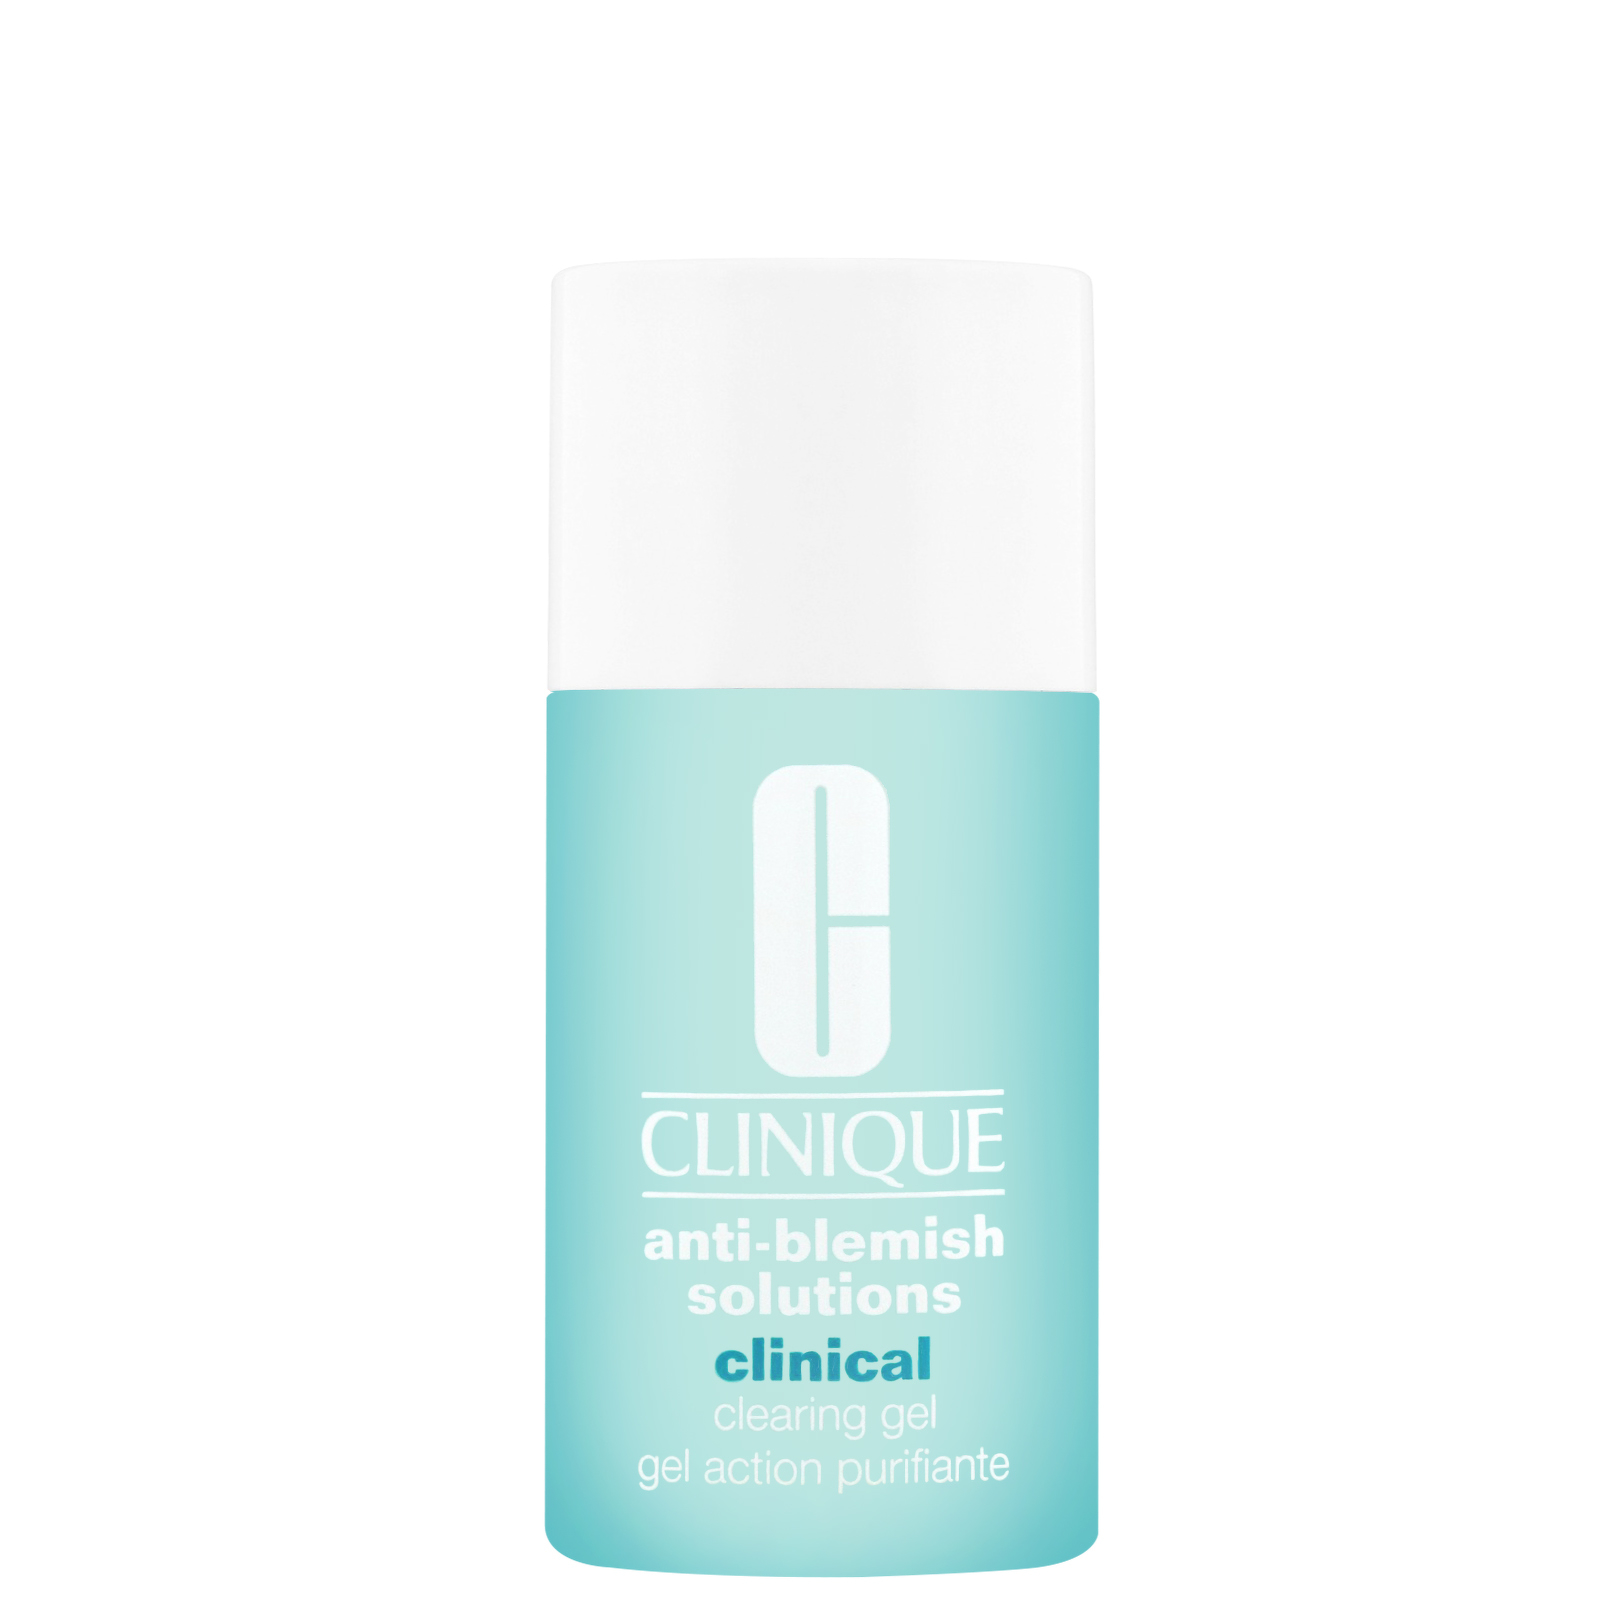 Clinique Serums & Treatments Anti-Blemish Solutions Clinical Clearing Gel 30ml / 1 fl.oz.